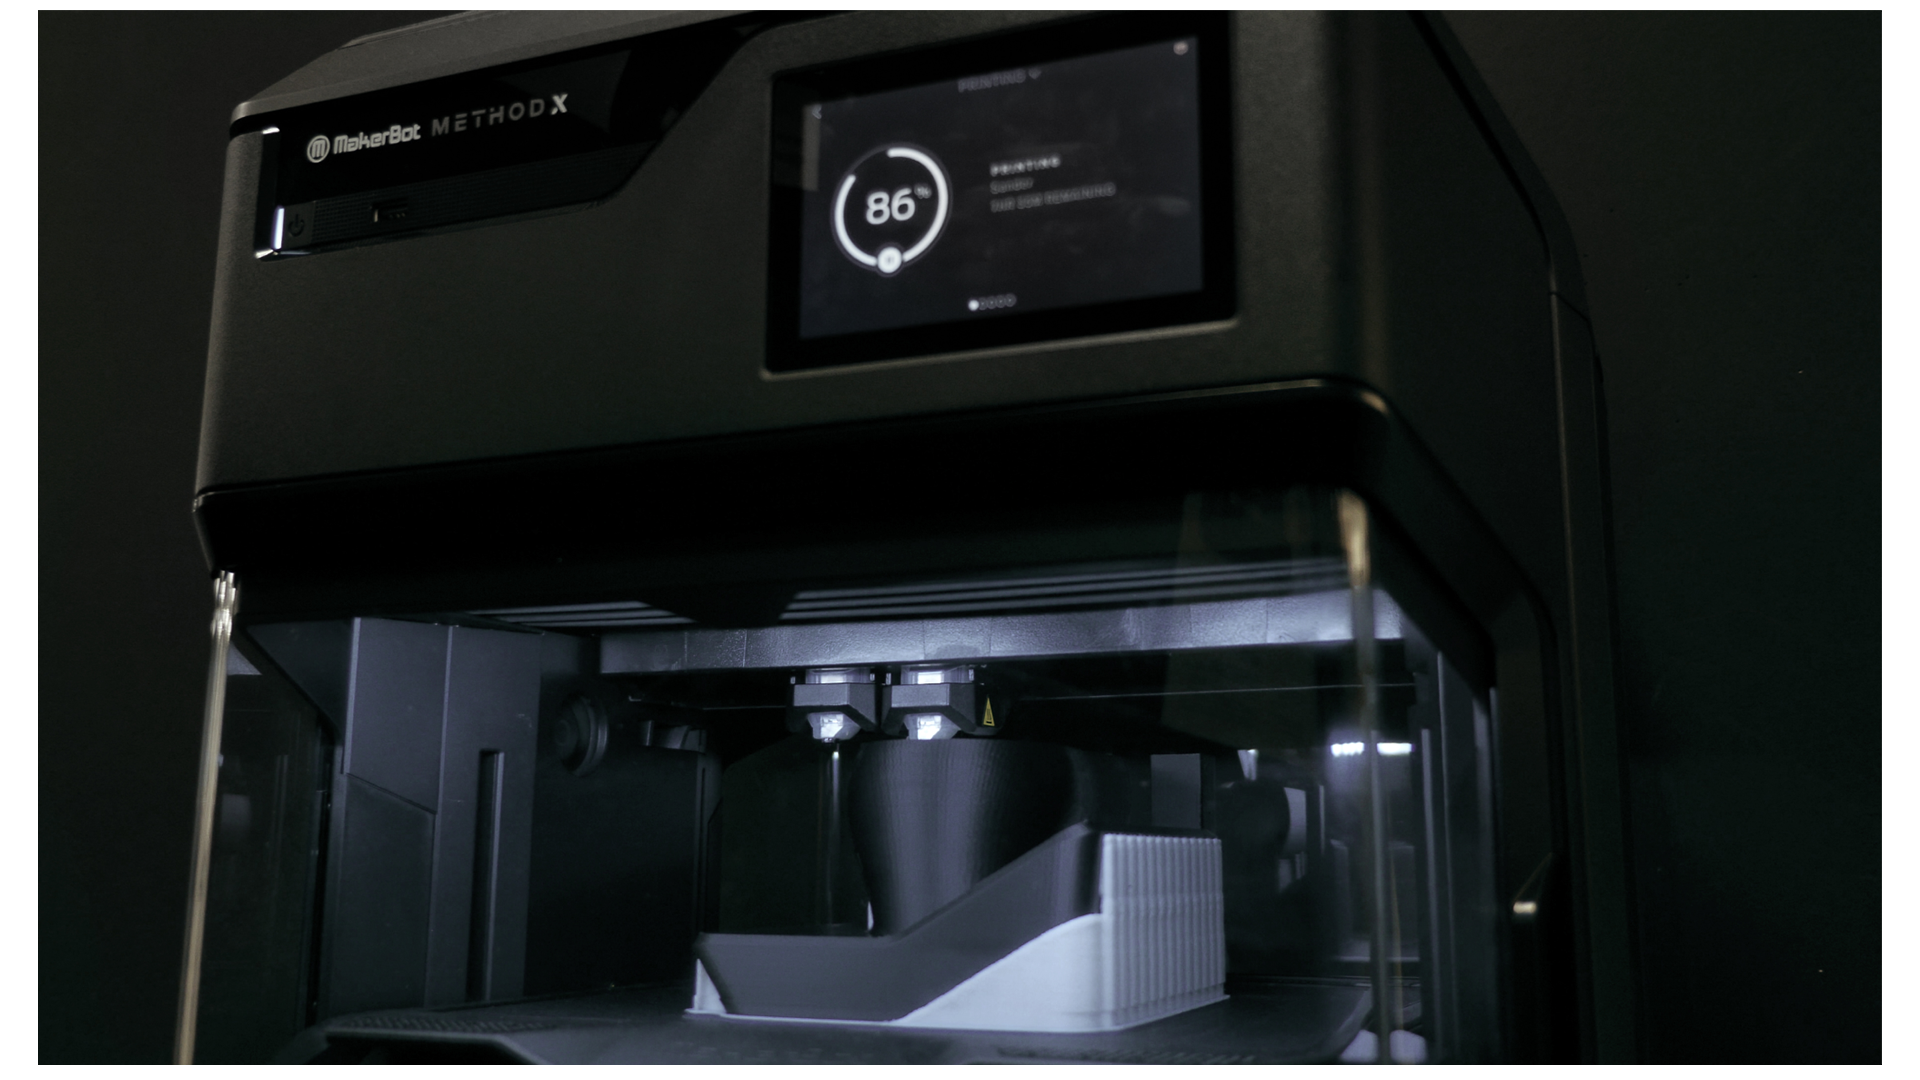 The MakerBot METHOD uses dual extruders to print dissolvable support material underneath the model.